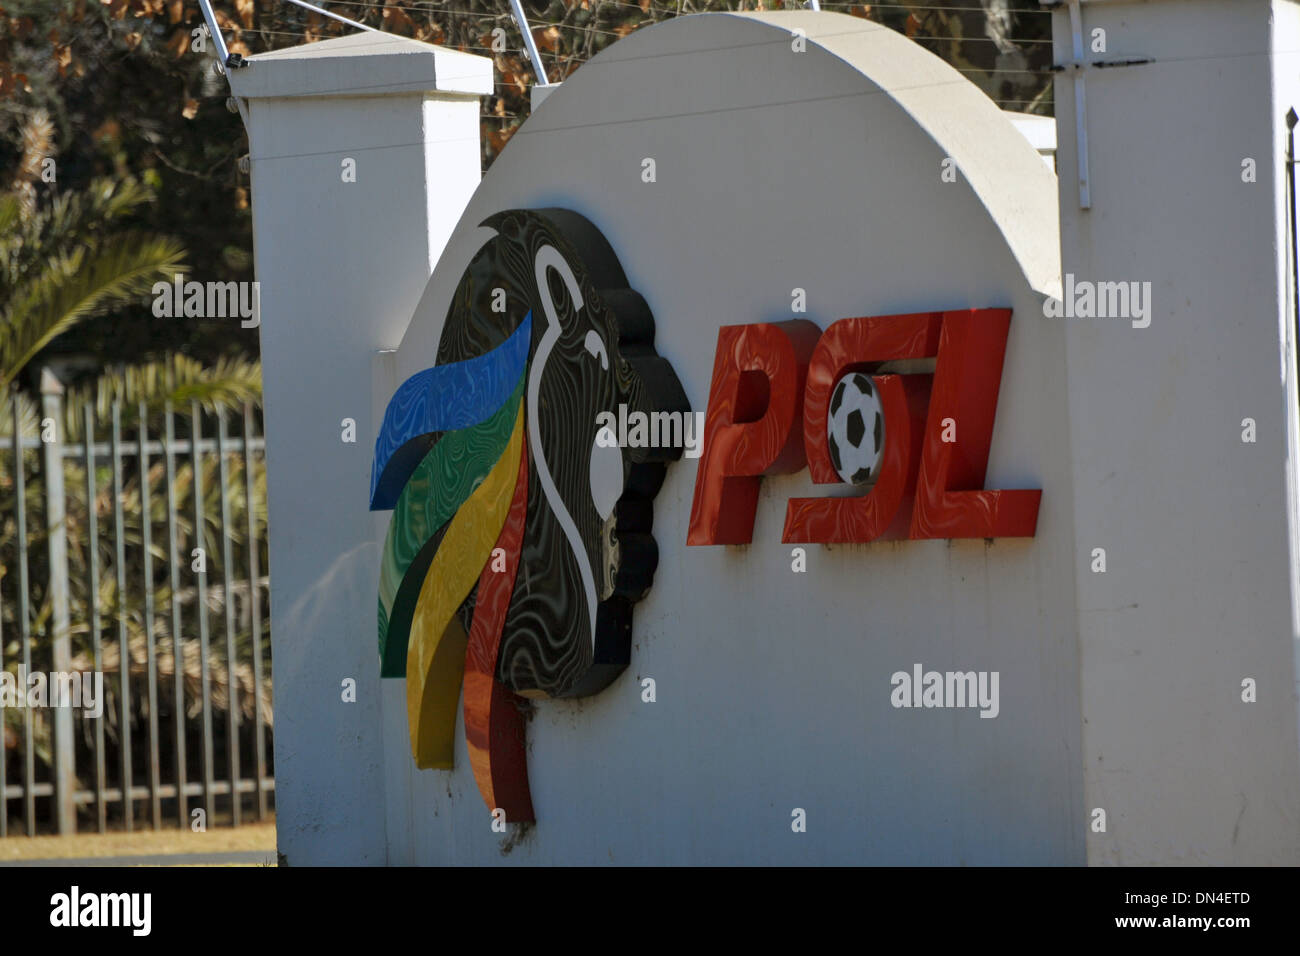 The sign and logo for the South African Premier Soccer League in Johannesburg. - Stock Image